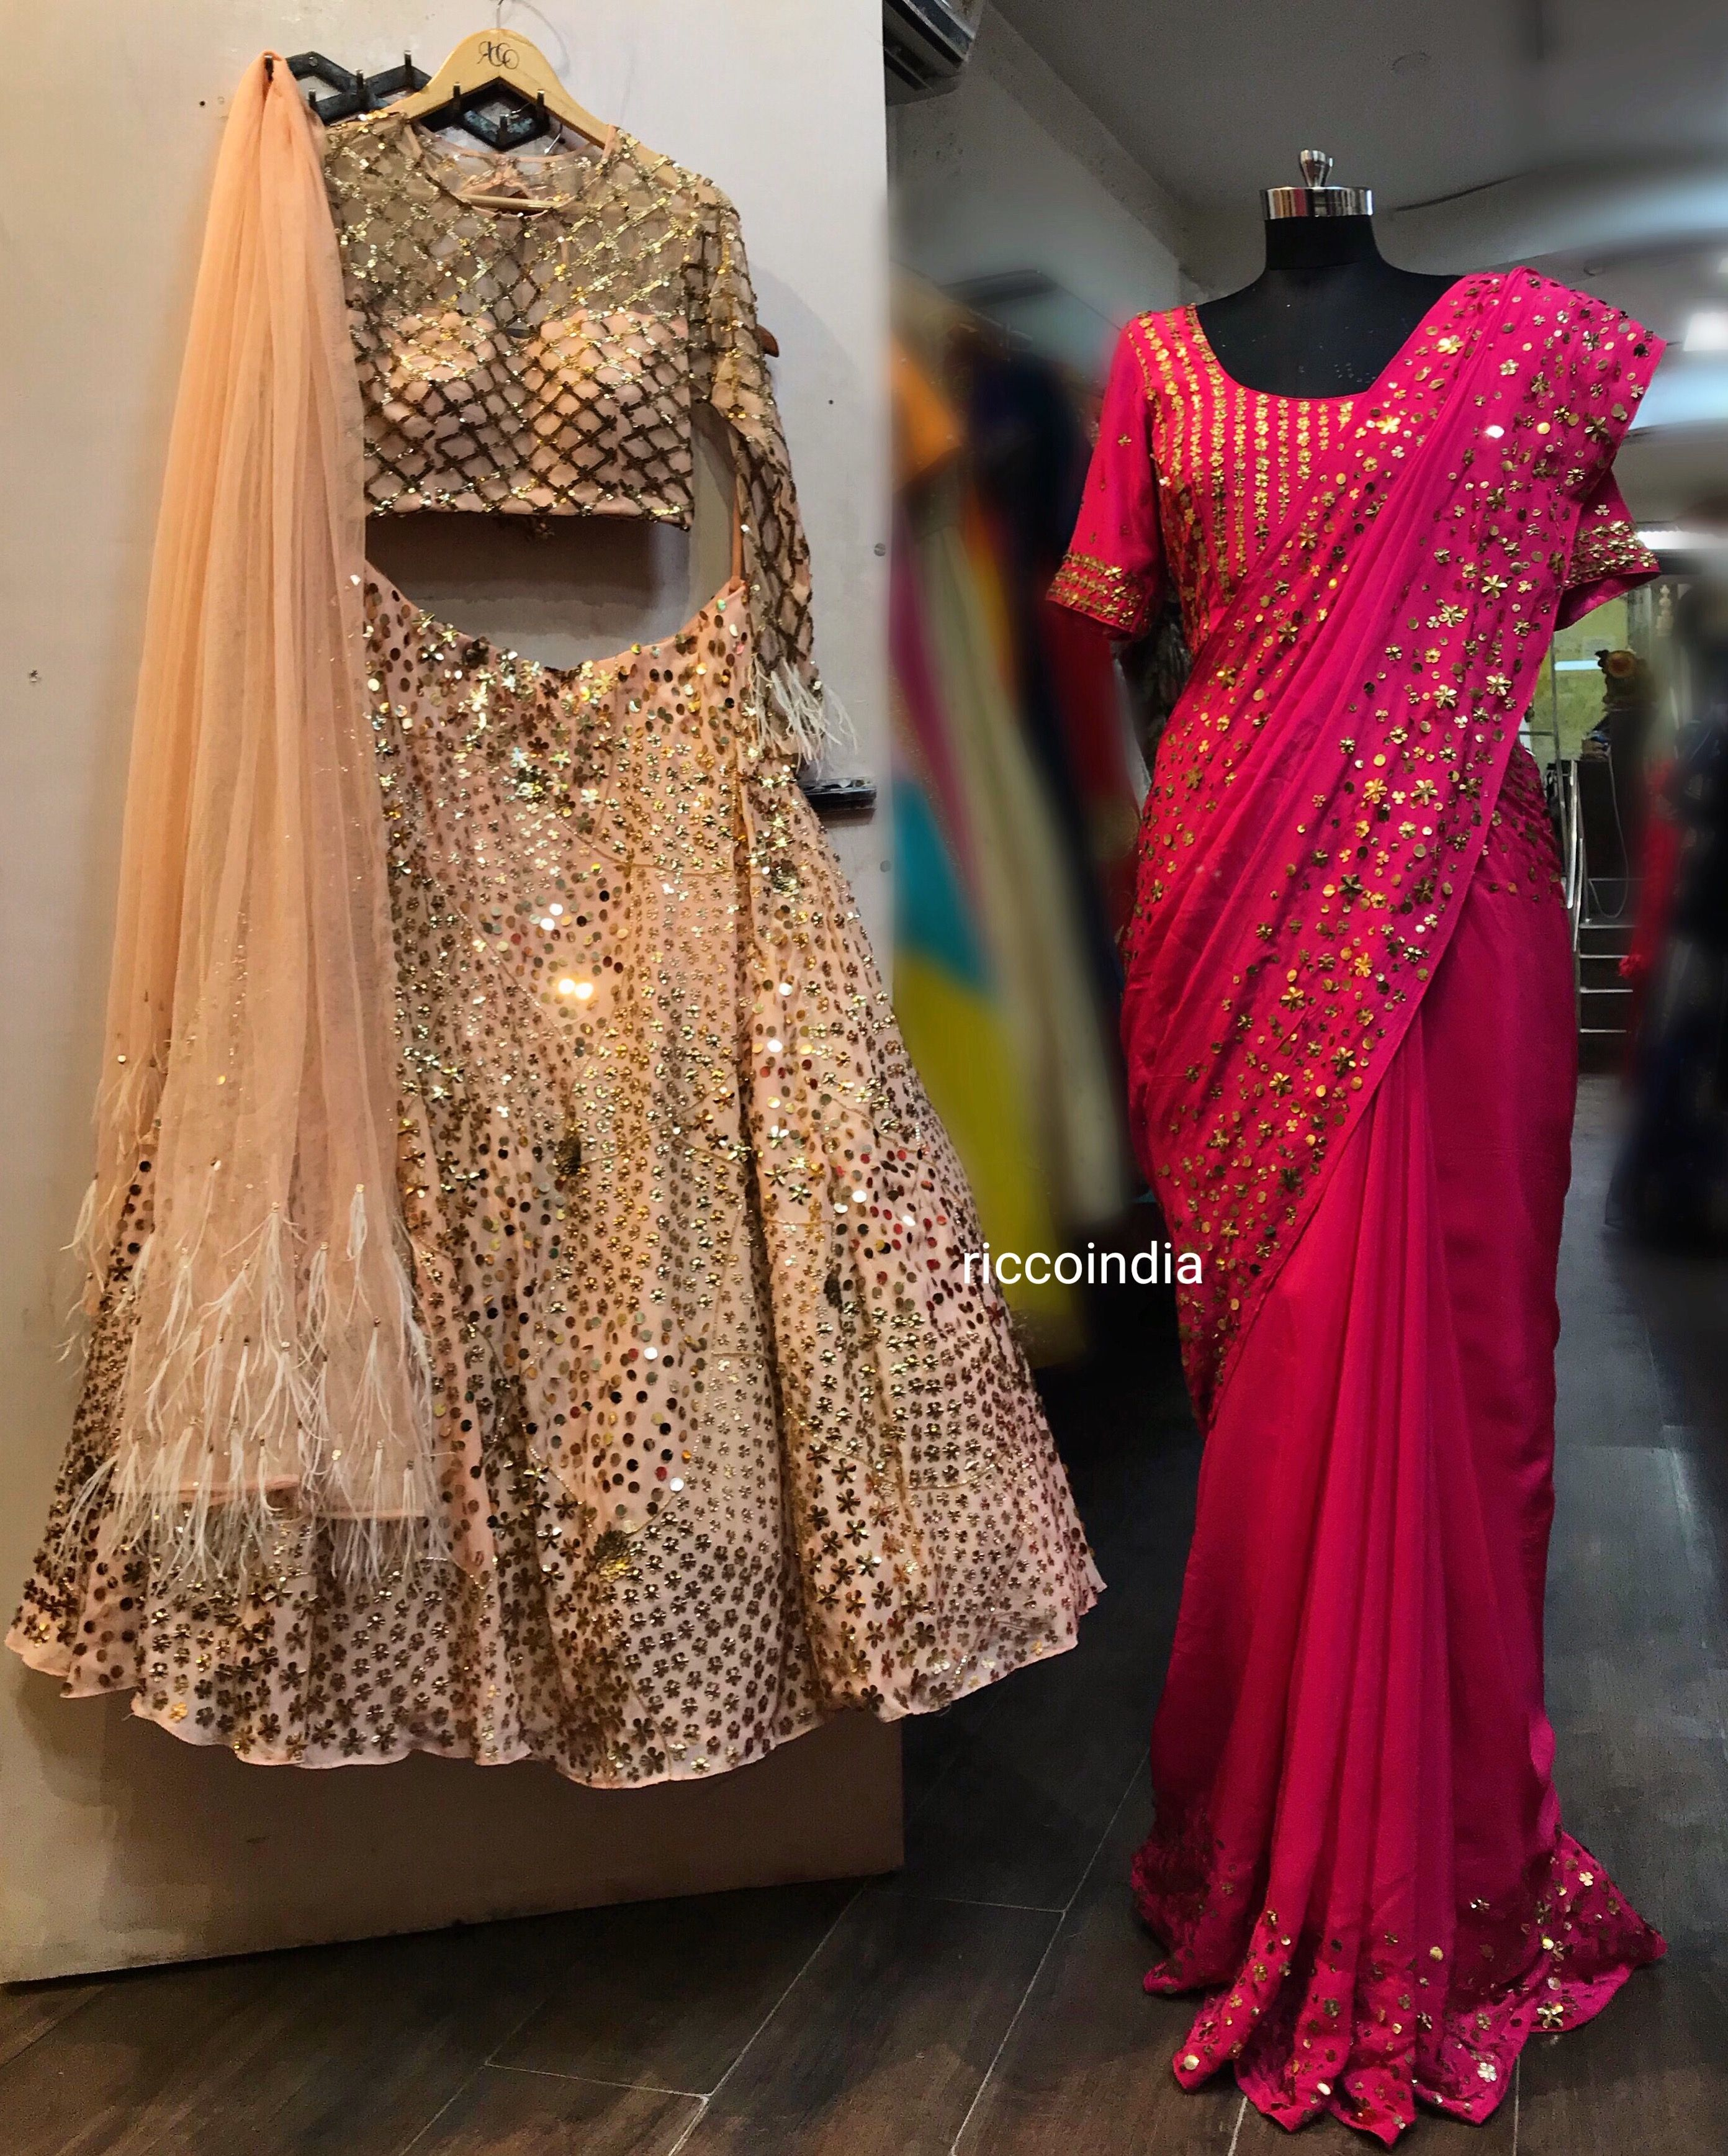 524d805f144 Peach sequin work Lehenga for the daughter and pink saree with sequin  embroidery for the mother.